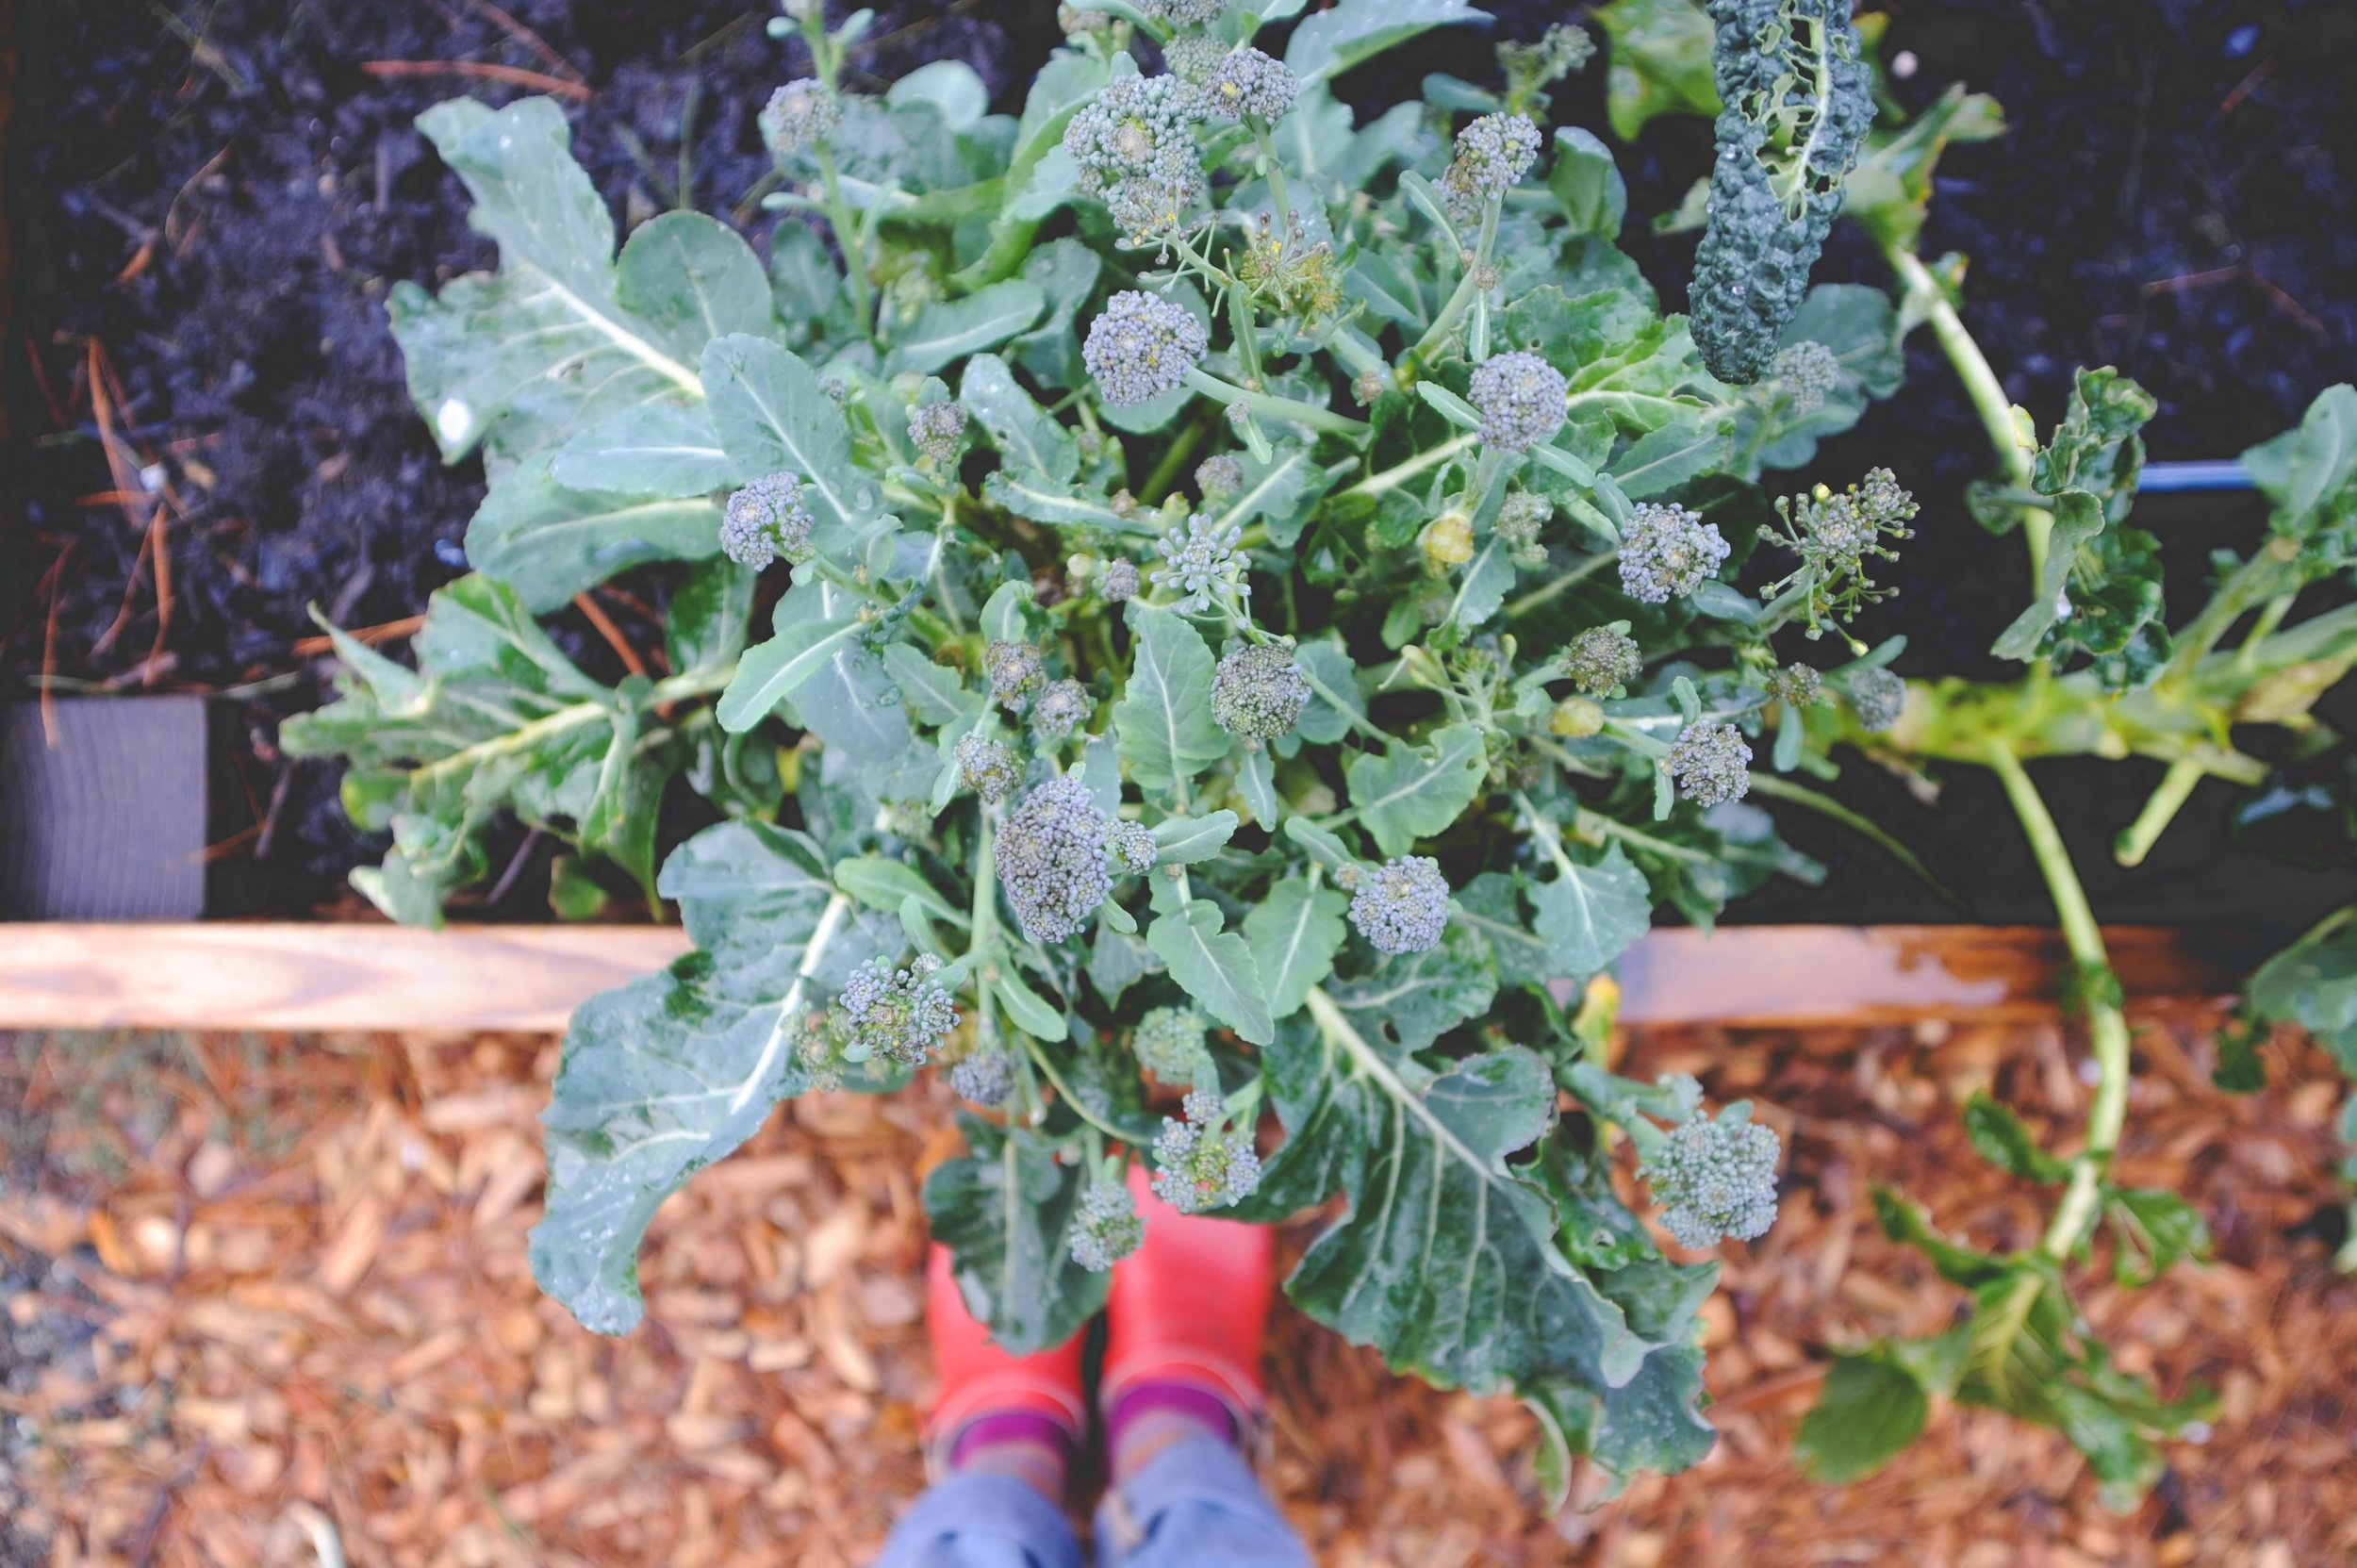 Over-wintered broccoli in early March. The plant was surrounded with compost and the empty spaces in the garden were covered in compost.